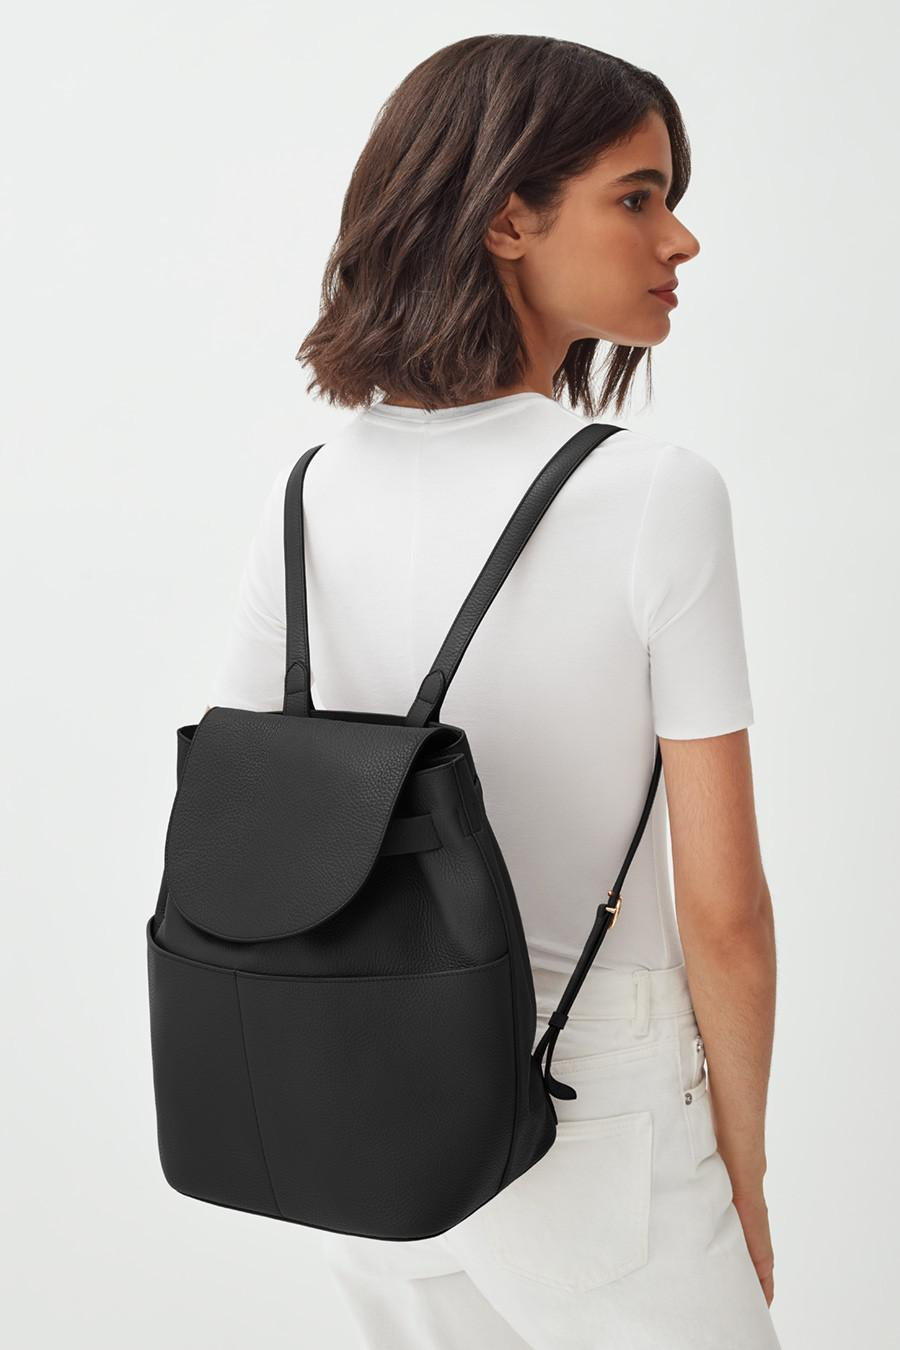 Women's Leather Backpack in Black | Pebbled Leather by Cuyana 6